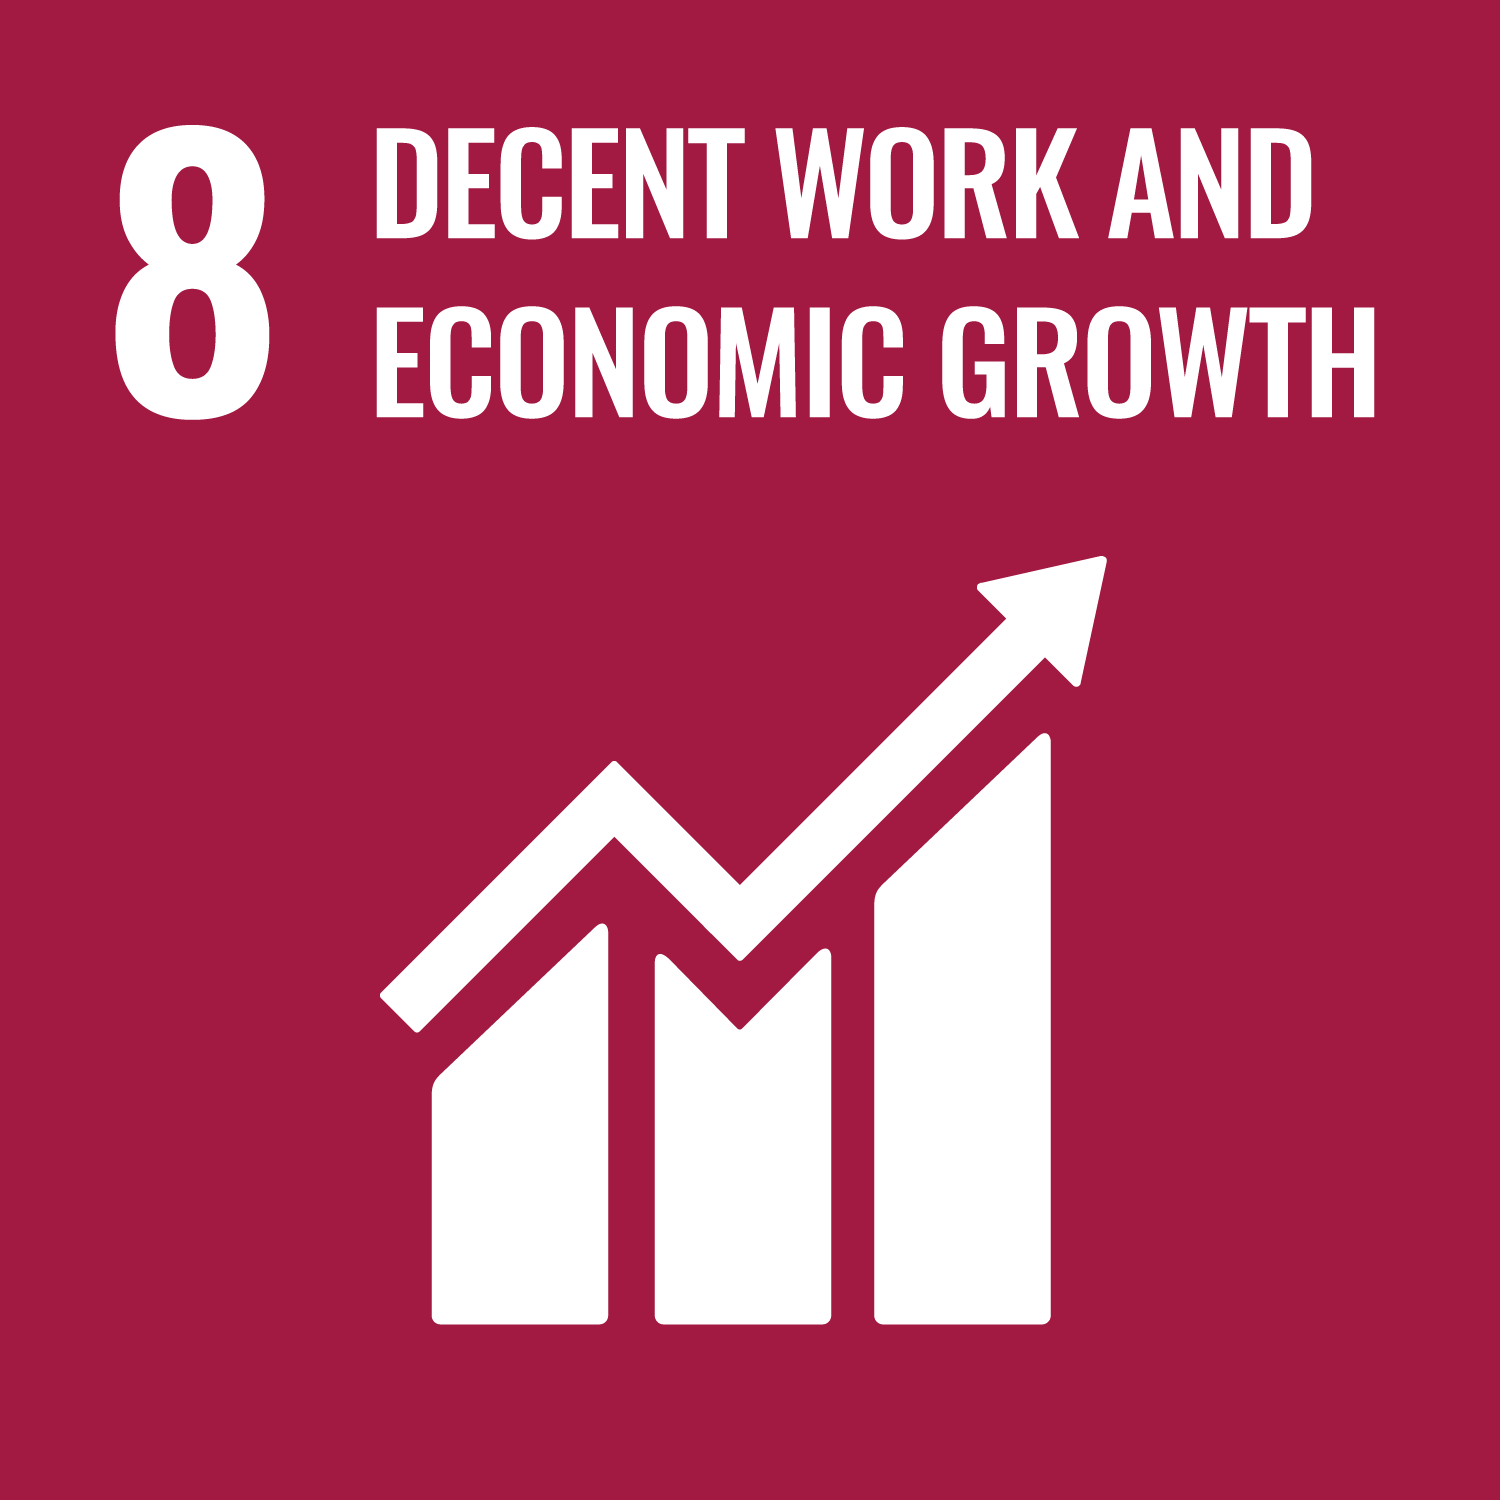 Decent work and economic growth.